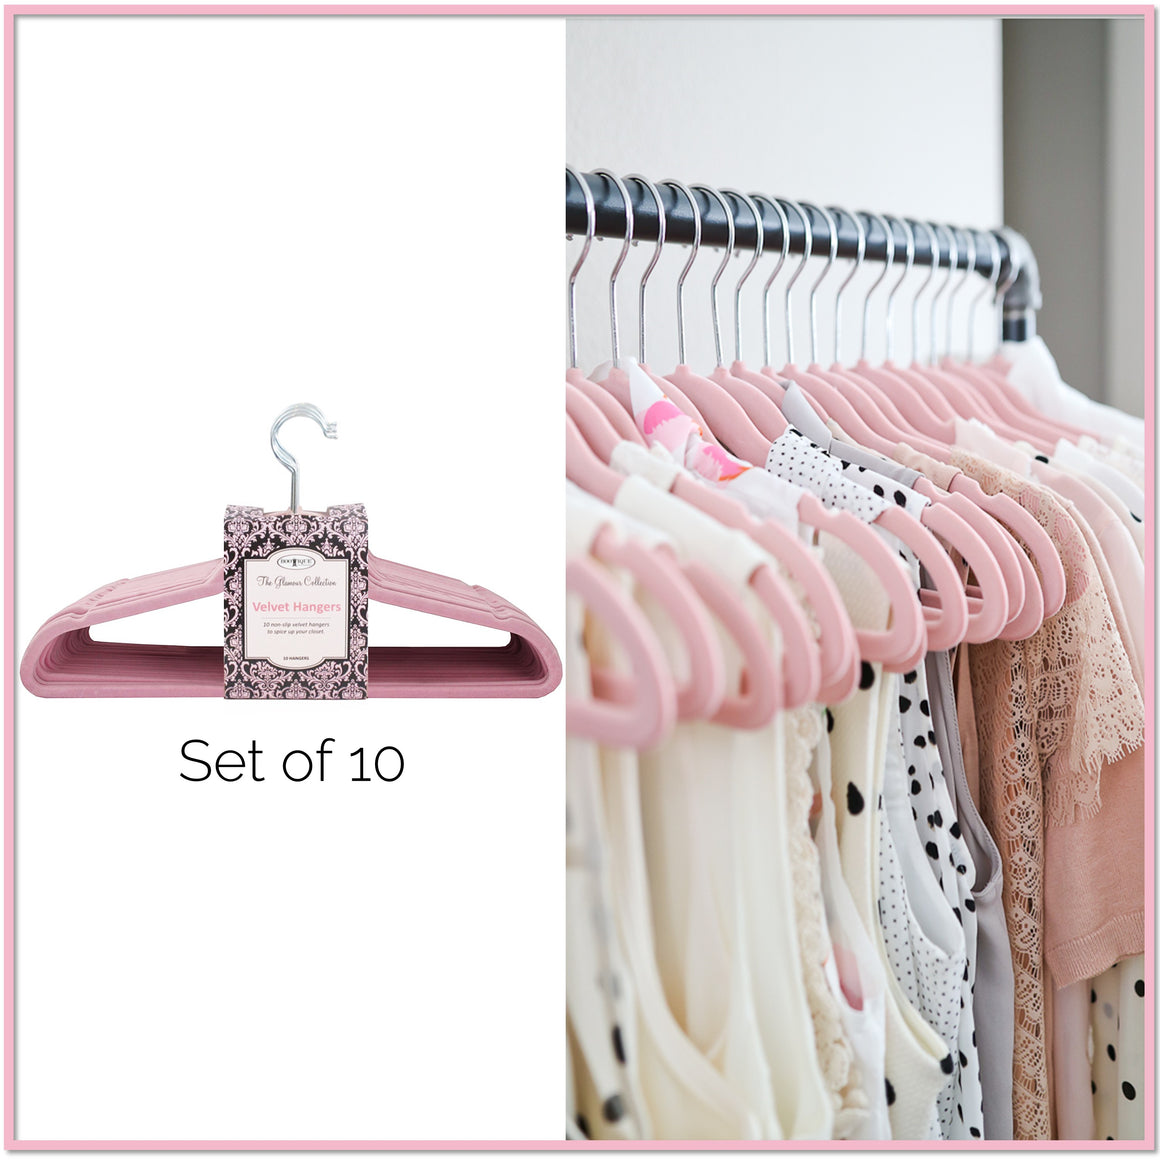 Glamour Velvet Hangers™ (Set of 10) - Boottique